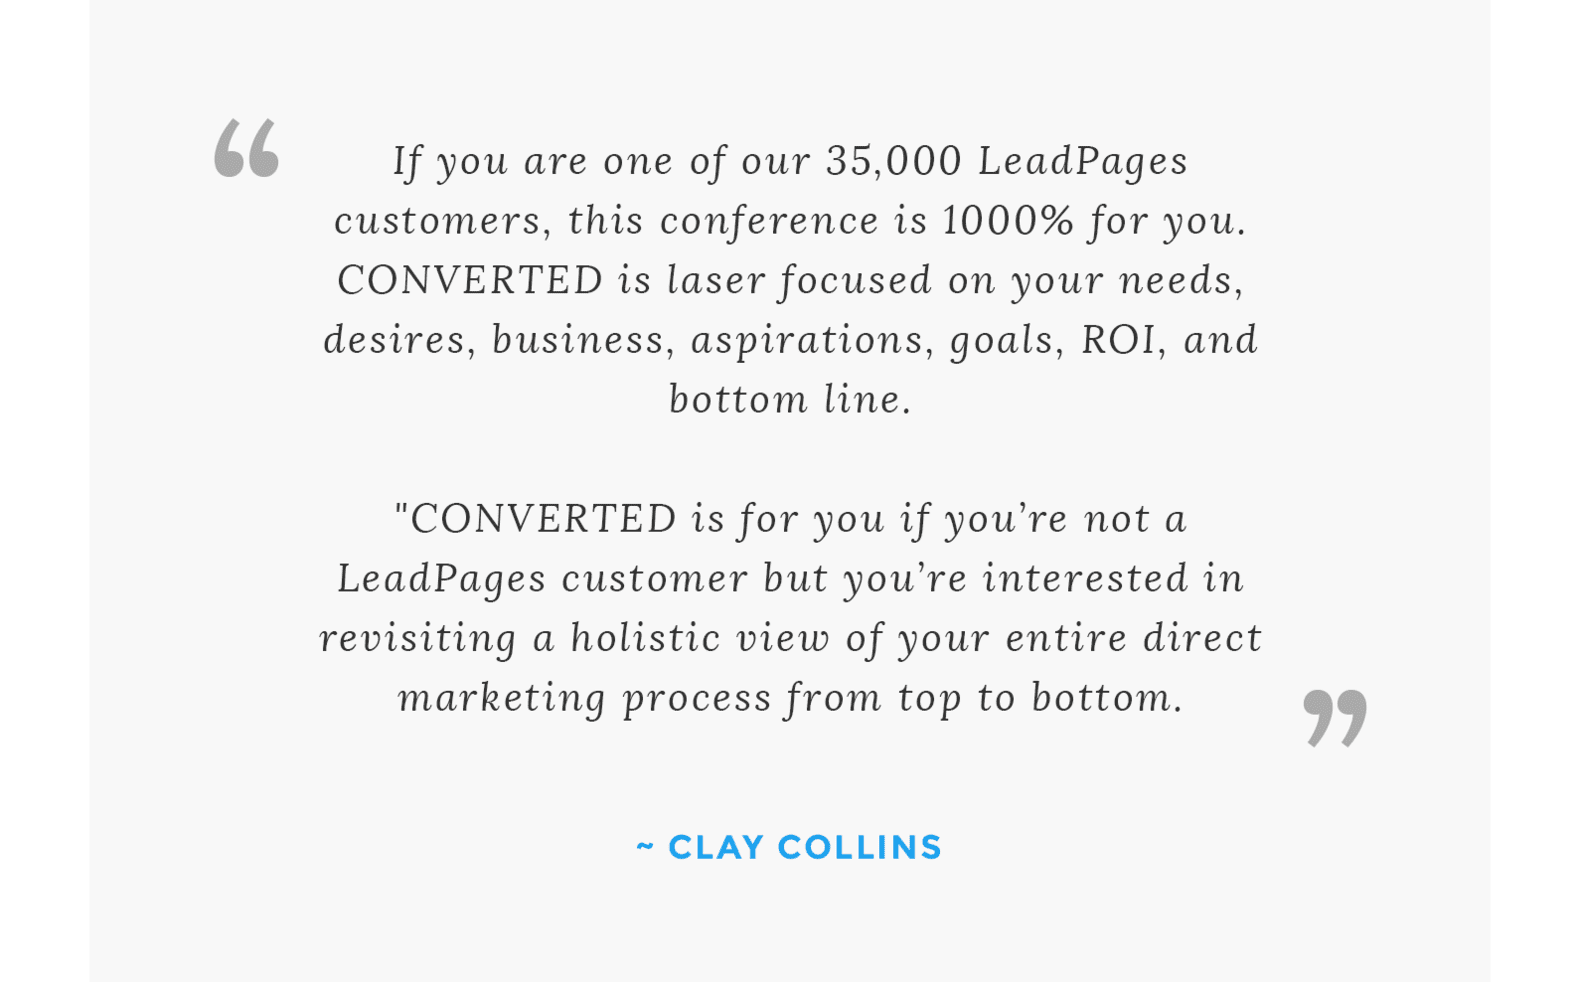 """If you are one of our 35,000 LeadPages customers, this conference is 1000% for you. CONVERTED is laser focused on your needs, desires, business, aspirations, goals, ROI, and bottom line.  CONVERTED is for you if you're not a LeadPages customer but you're interested in revisiting a holistic view of your entire direct marketing process from top to bottom."" Clay Collins"